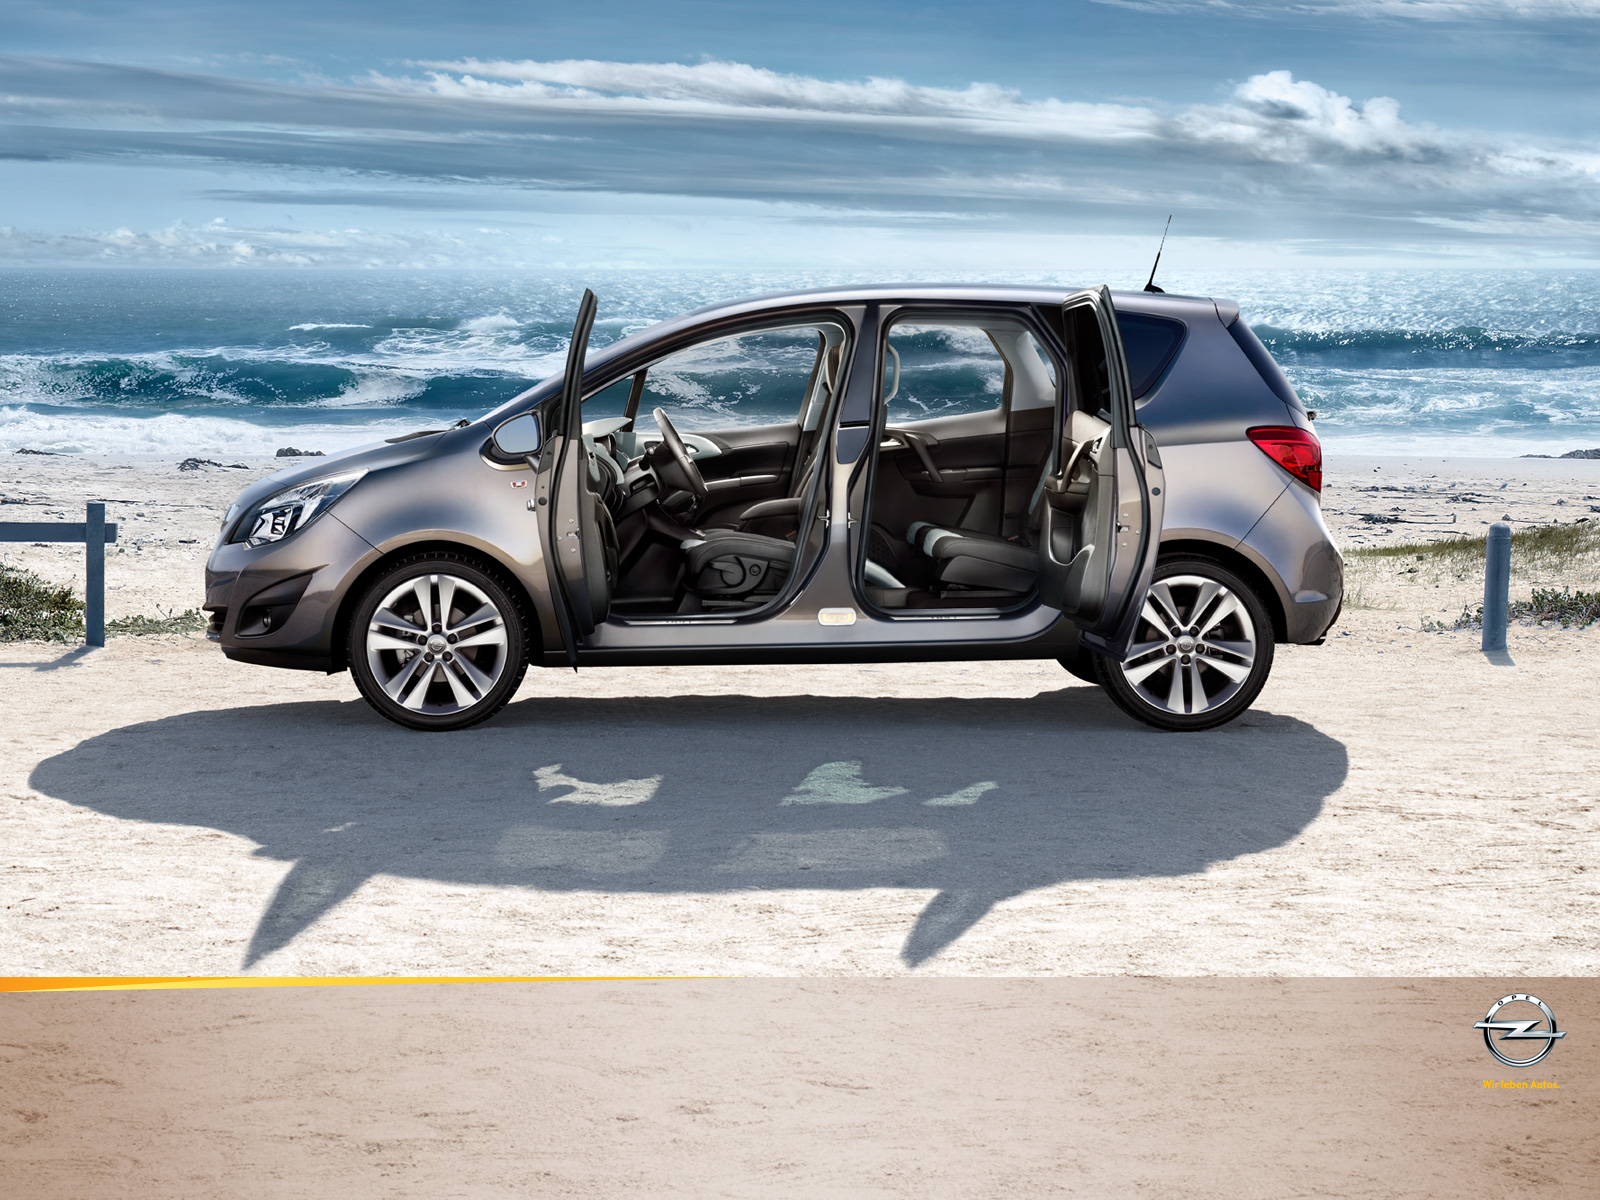 New opel meriva free desktop wallpapers for widescreen hd and wallpaper sciox Image collections